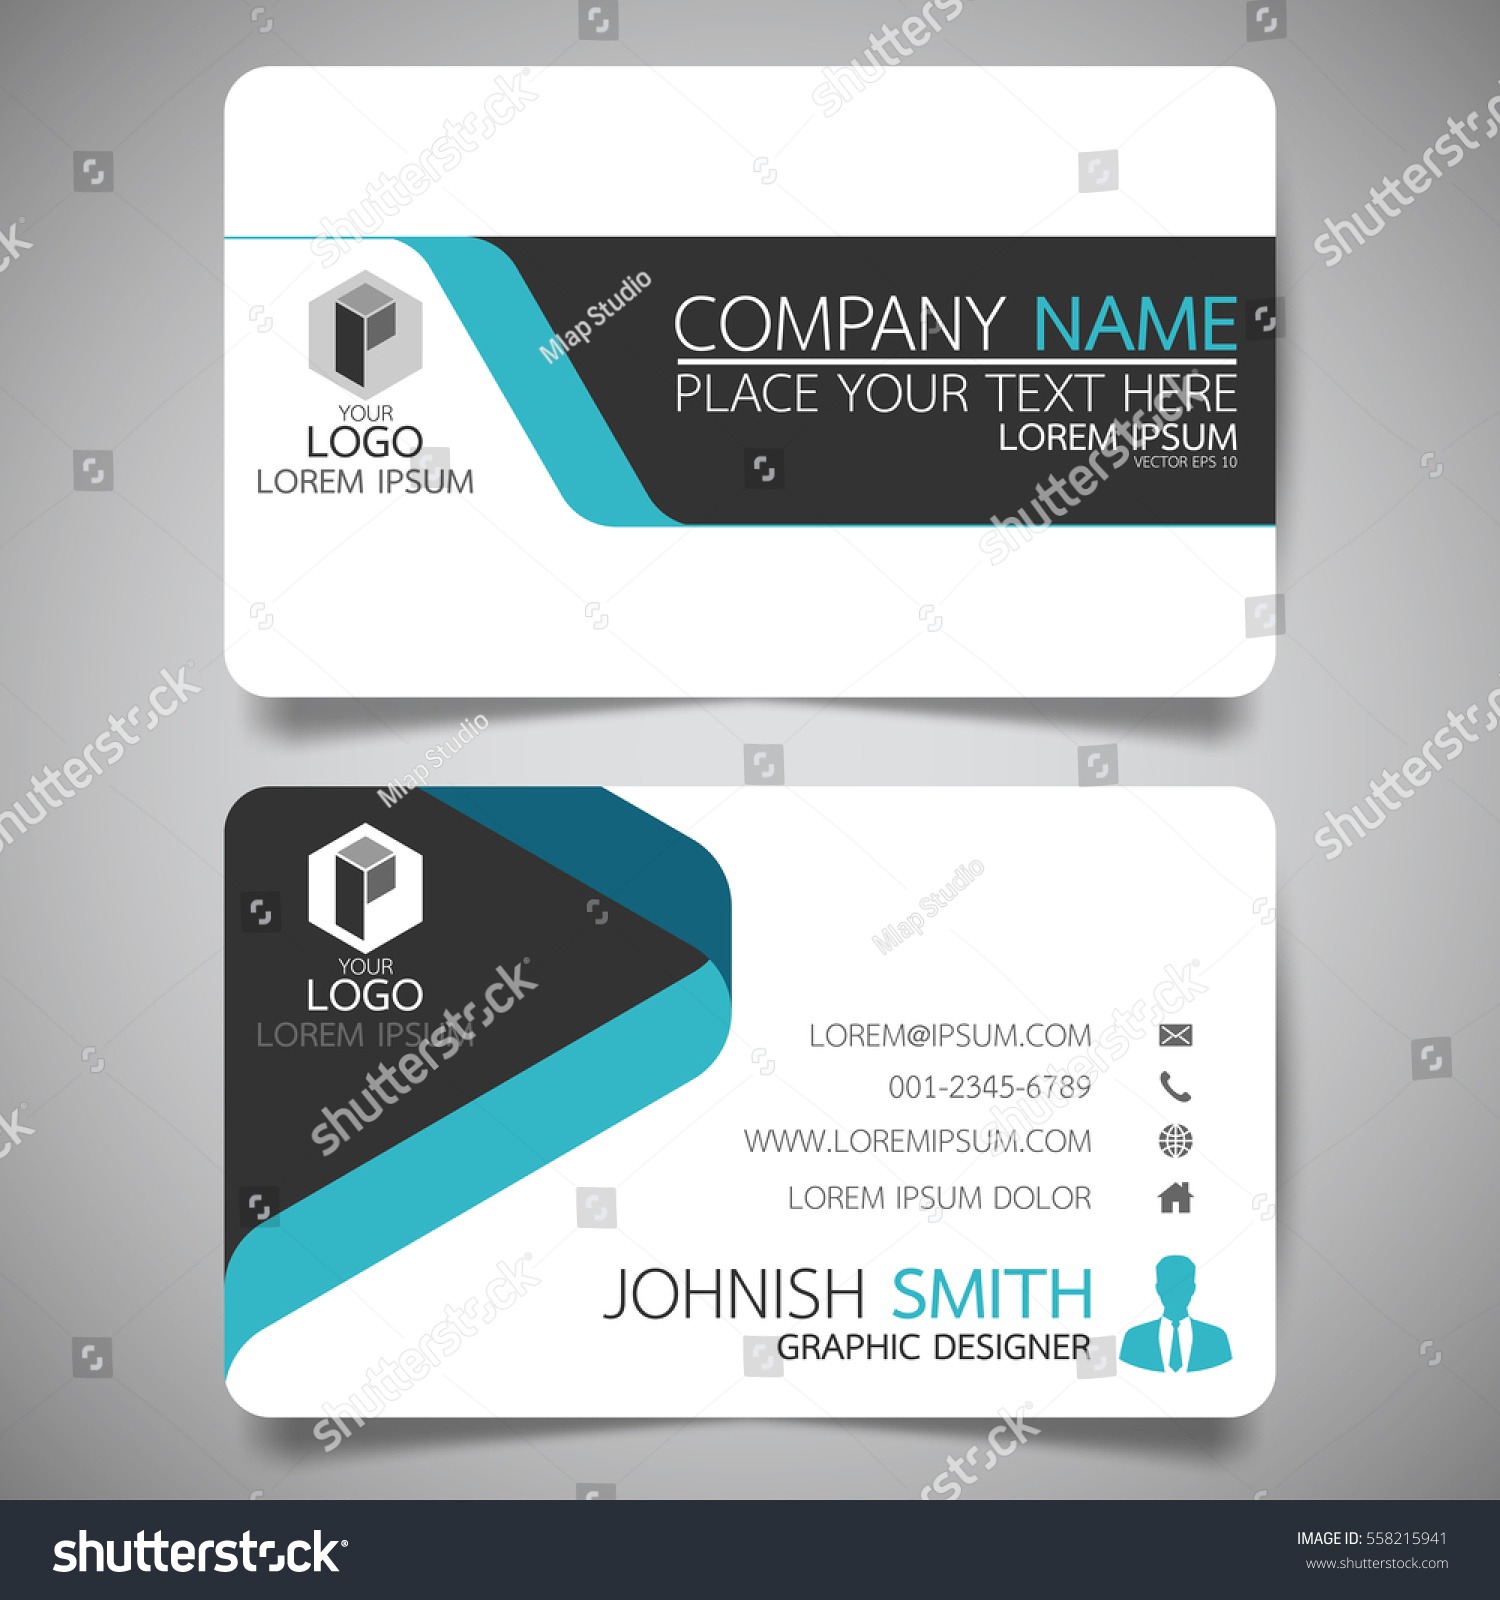 blue modern creative business card name のベクター画像素材